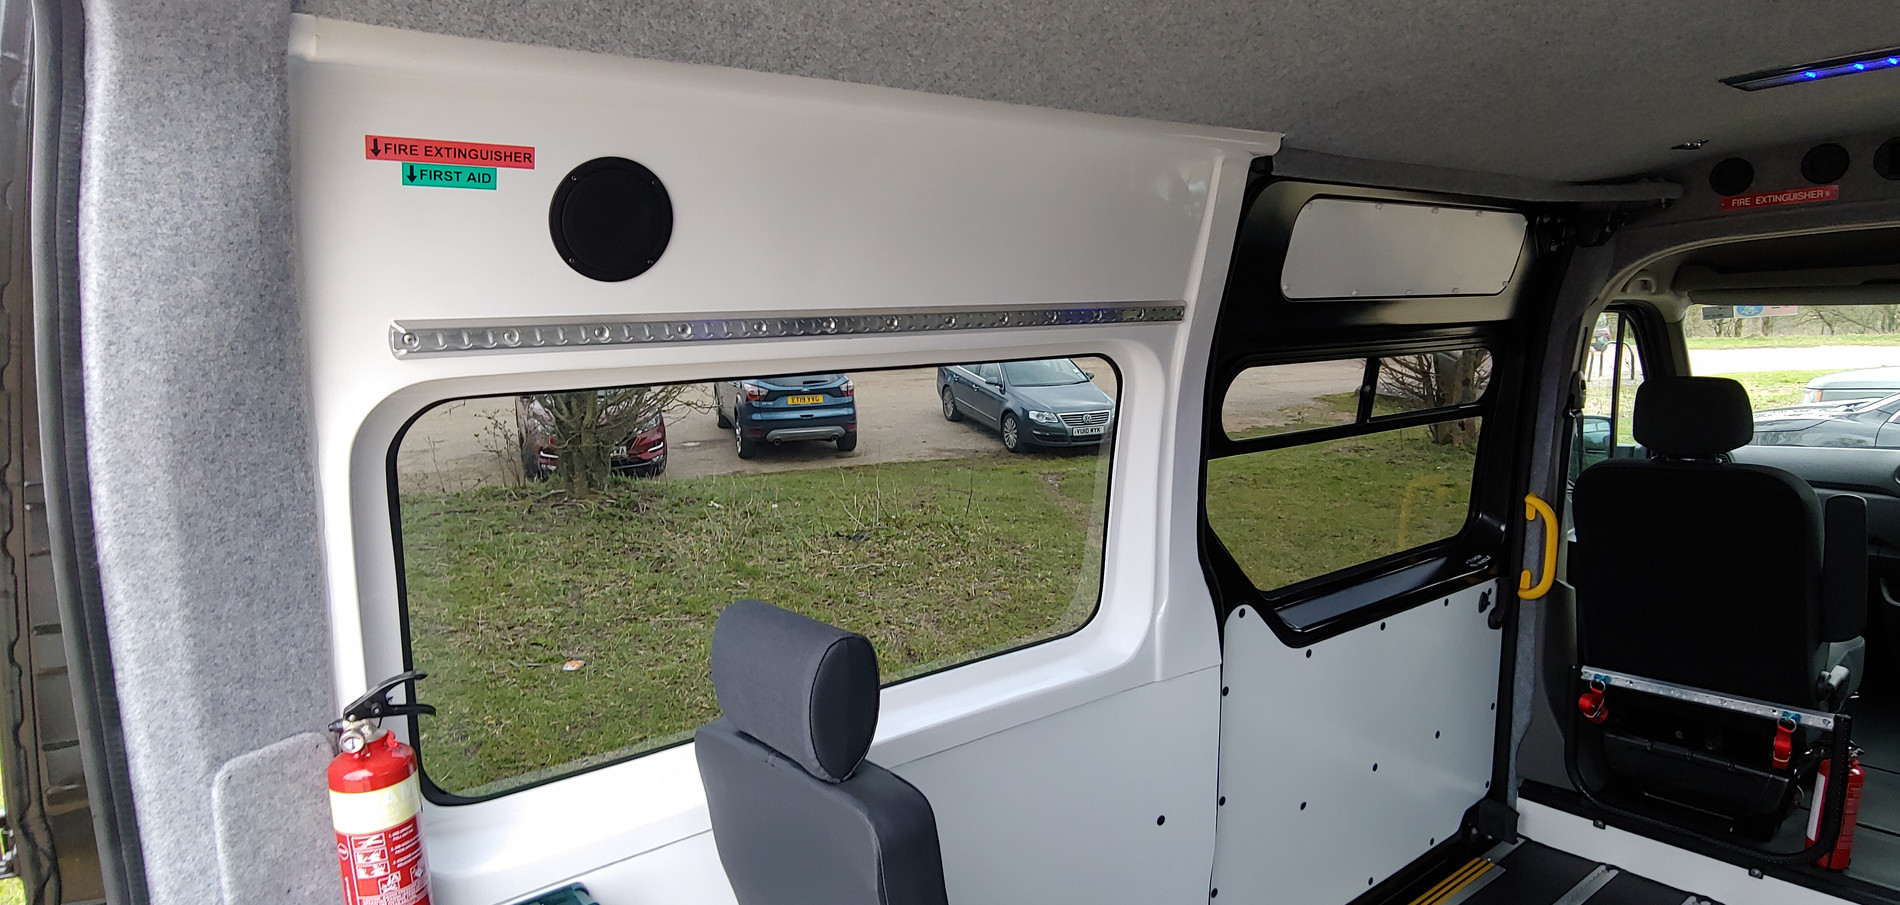 Cant rails and anti bacterial finish